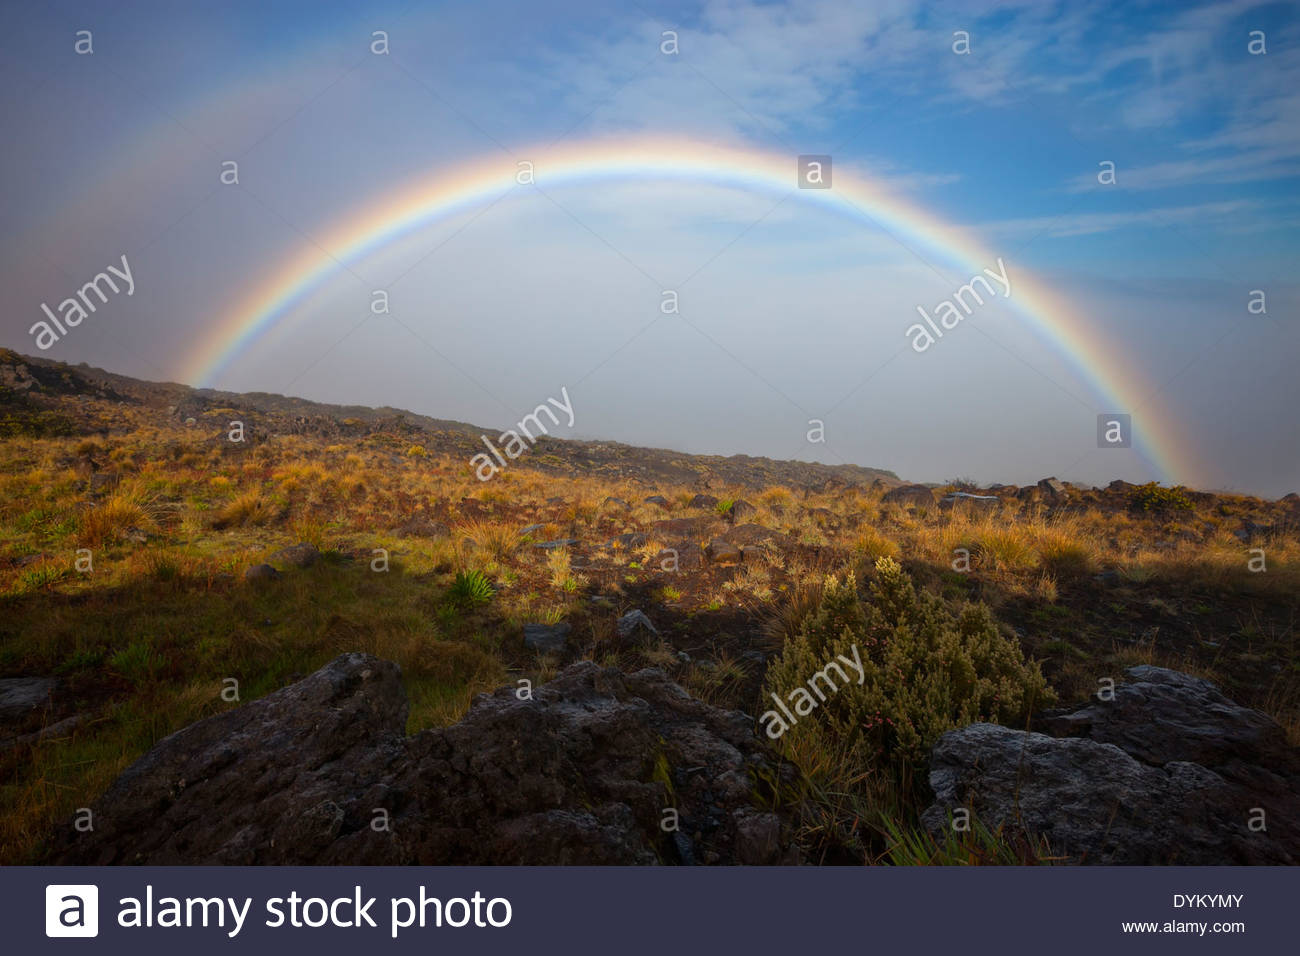 A bright rainbow stretches across the rugged eastern slope of the dormant Haleakalā volcano on the island of Maui, - Stock Image